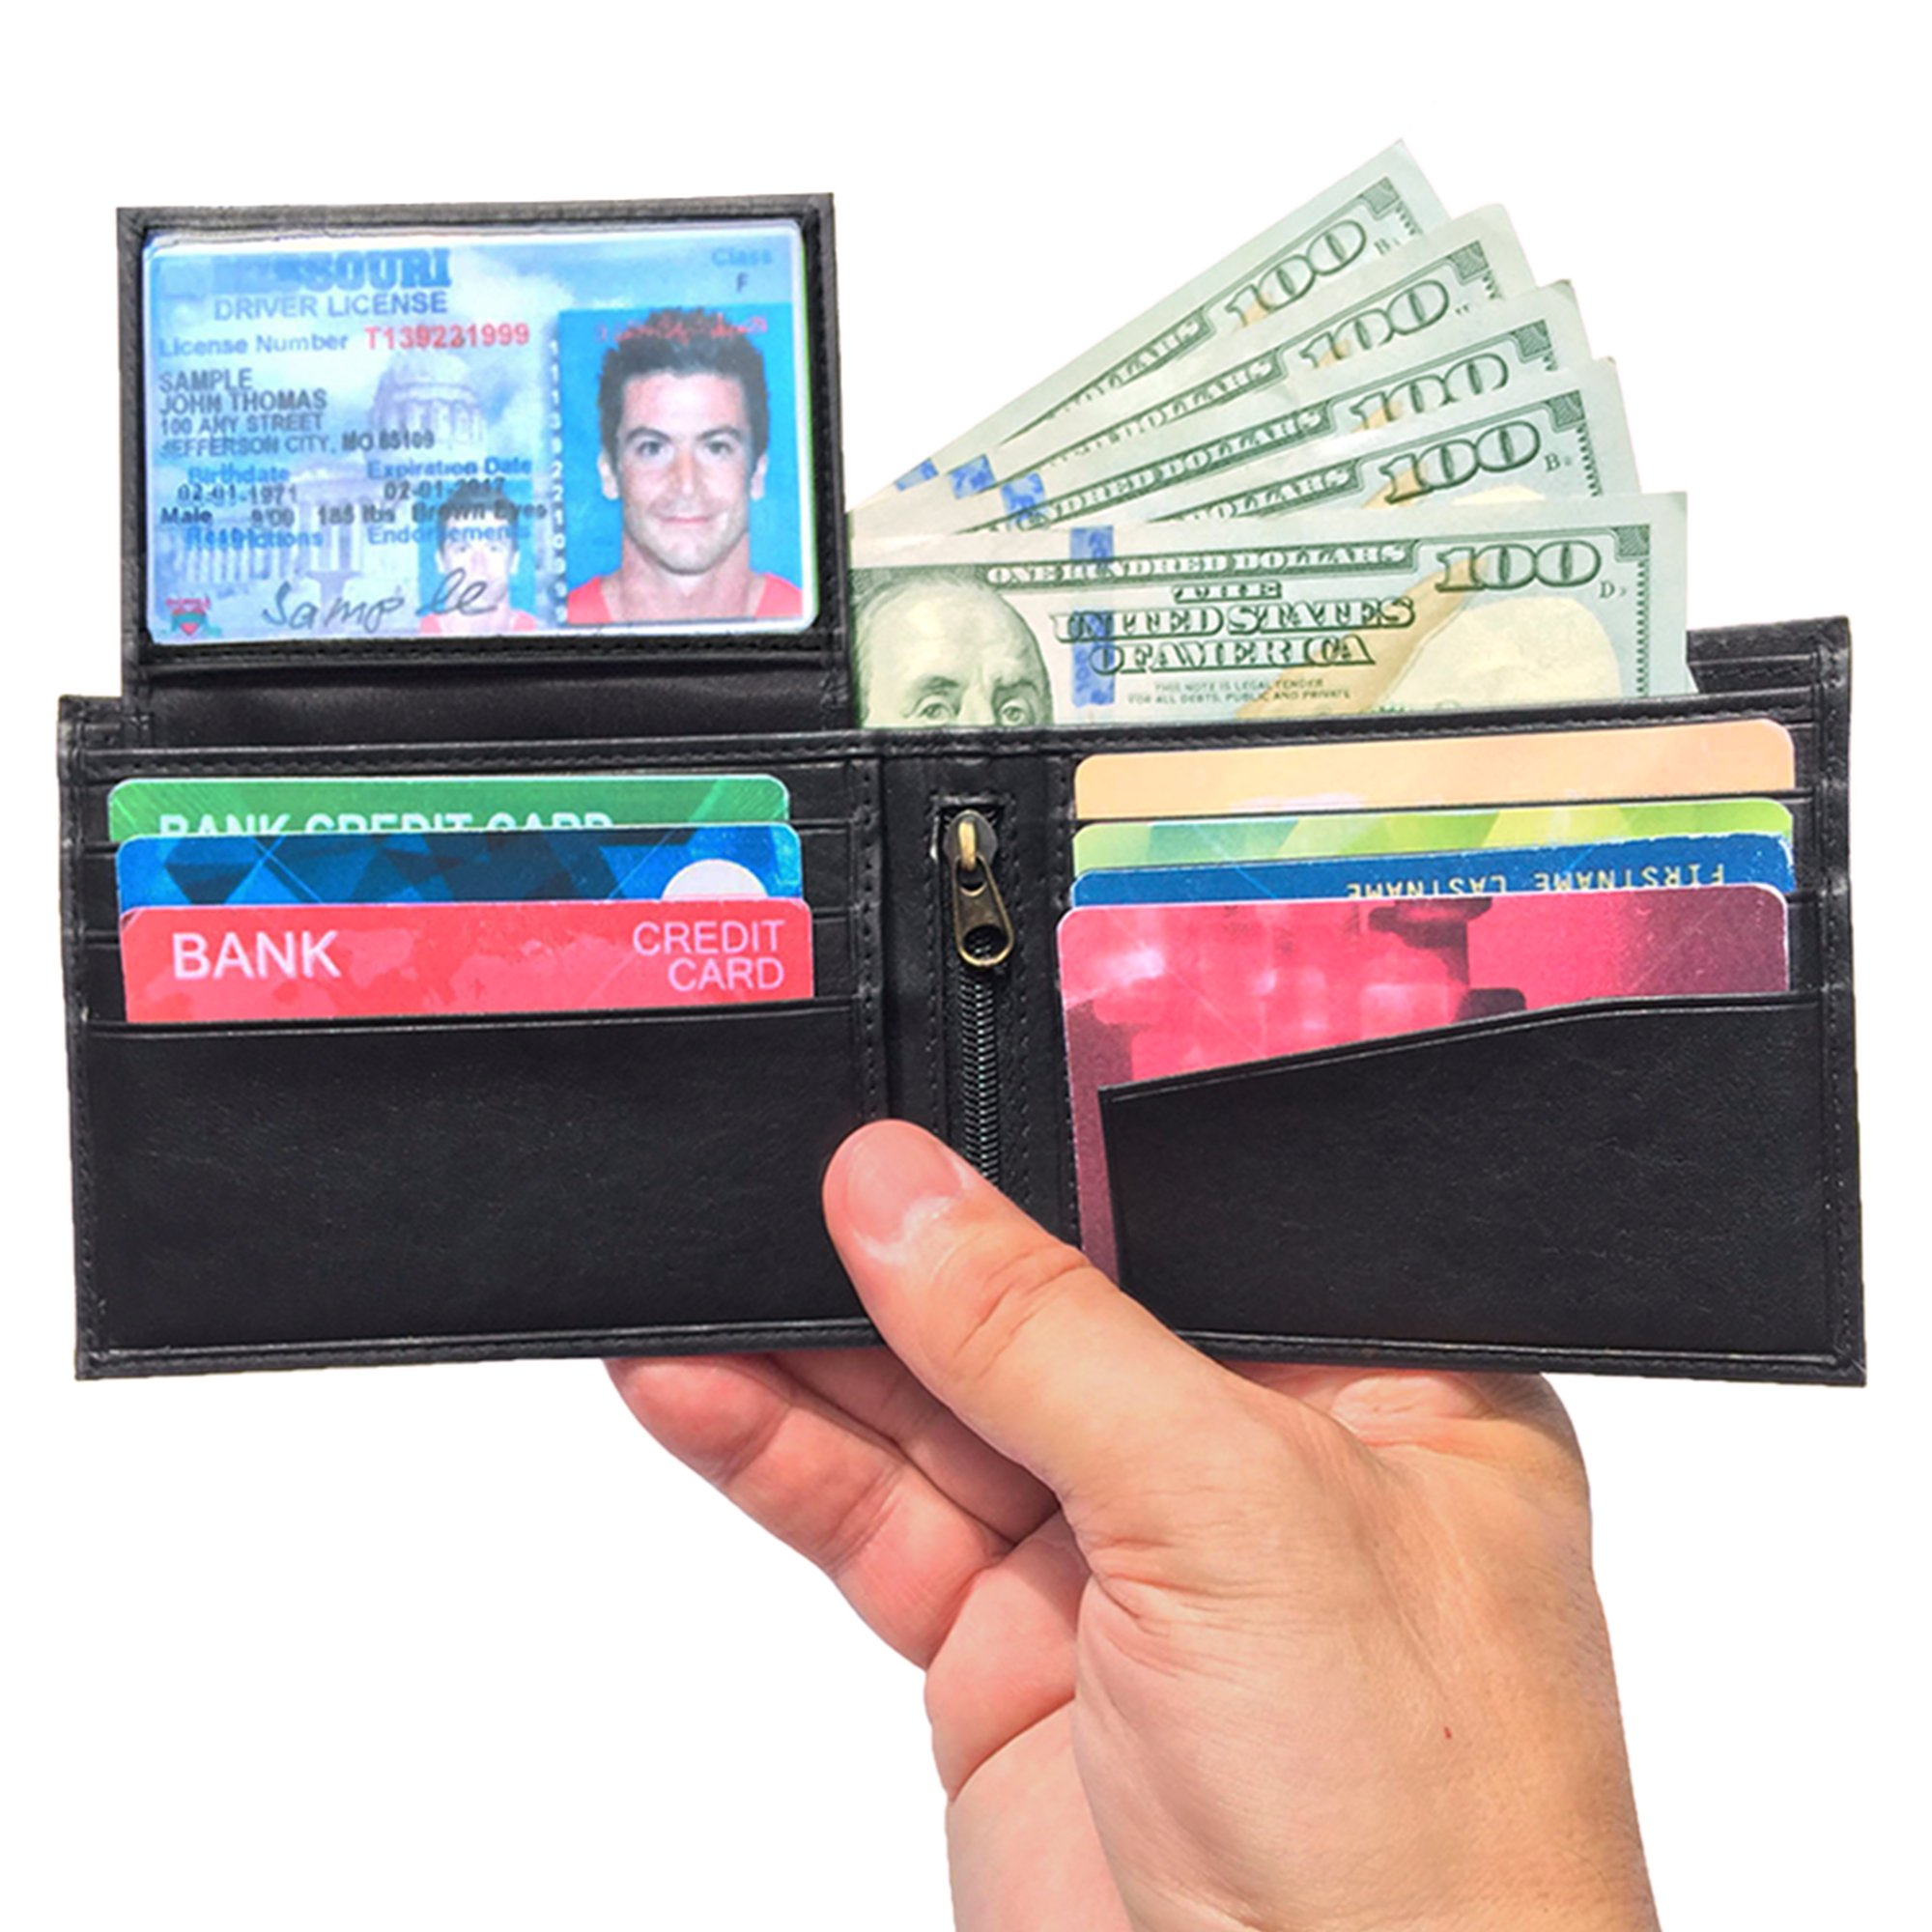 Run2Win Safety, RFID Blocking Wallet for Men, Slim Design, Genuine Leather, Great Credit Card Protection, Classic Black, Zippered Coin Pocket, Extra Capacity, Father's Day Gift, Mans Bifold